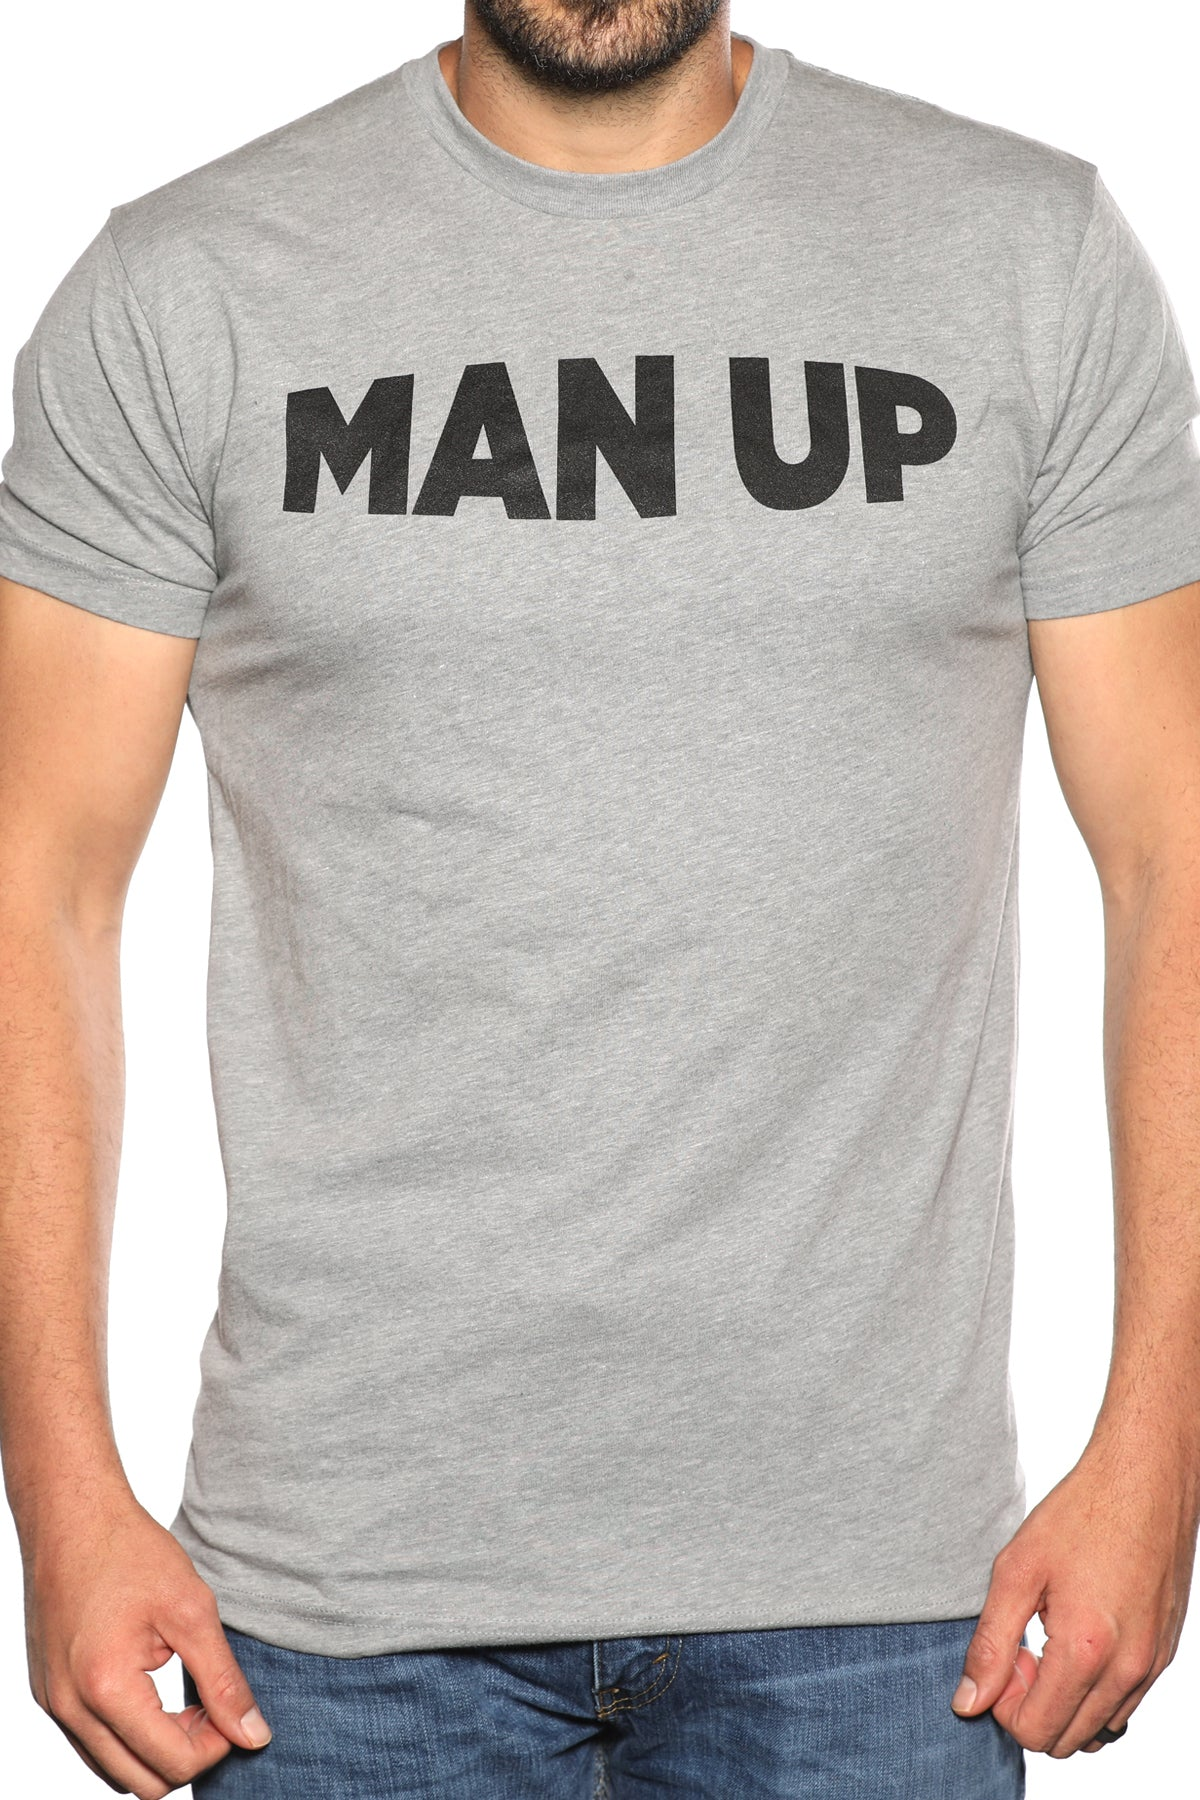 MAN UP Shirt – Grey